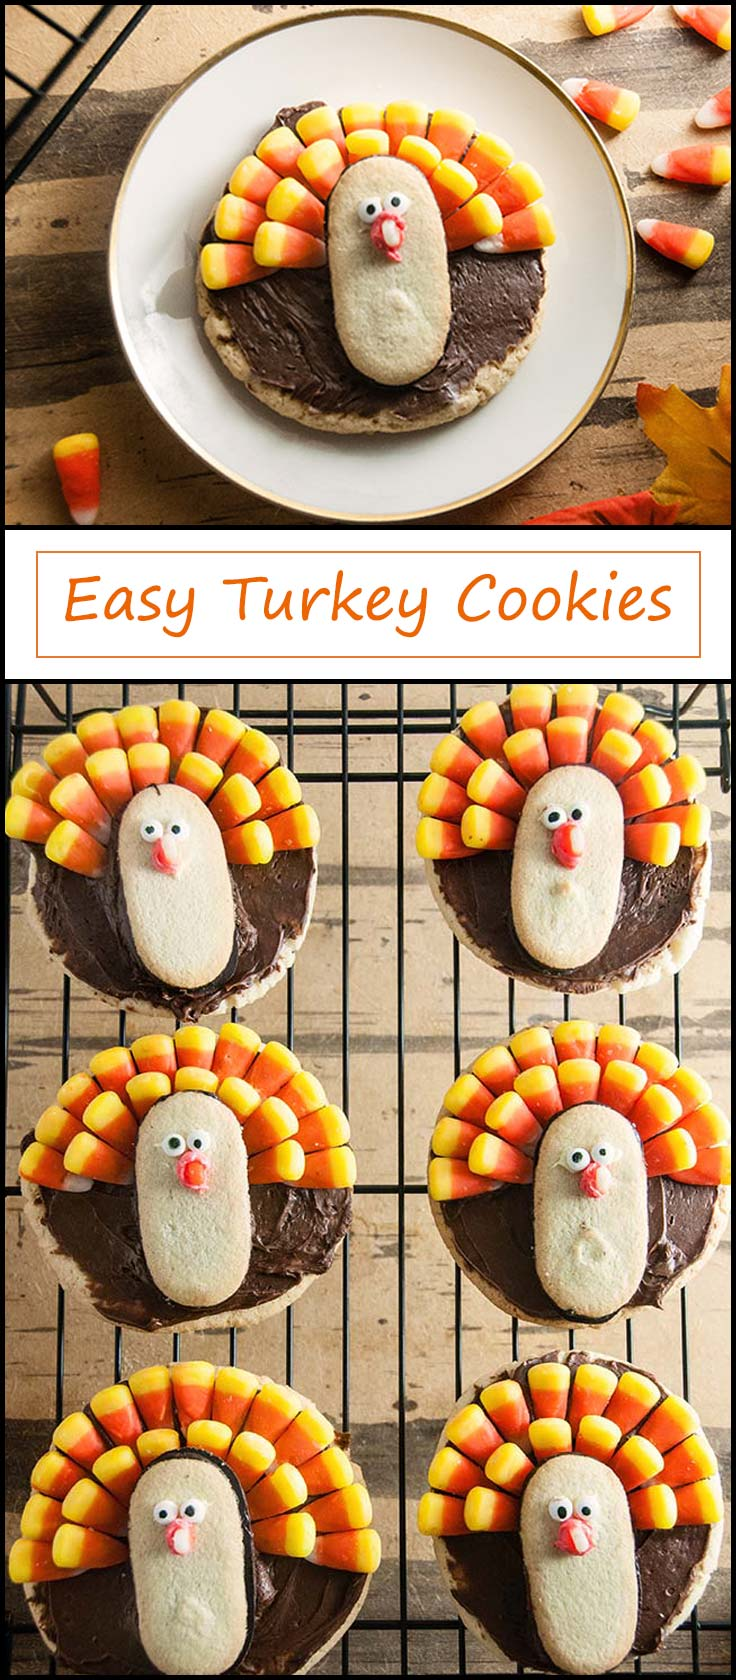 Easy Turkey Cookies from www.seasonedsprinkles.com